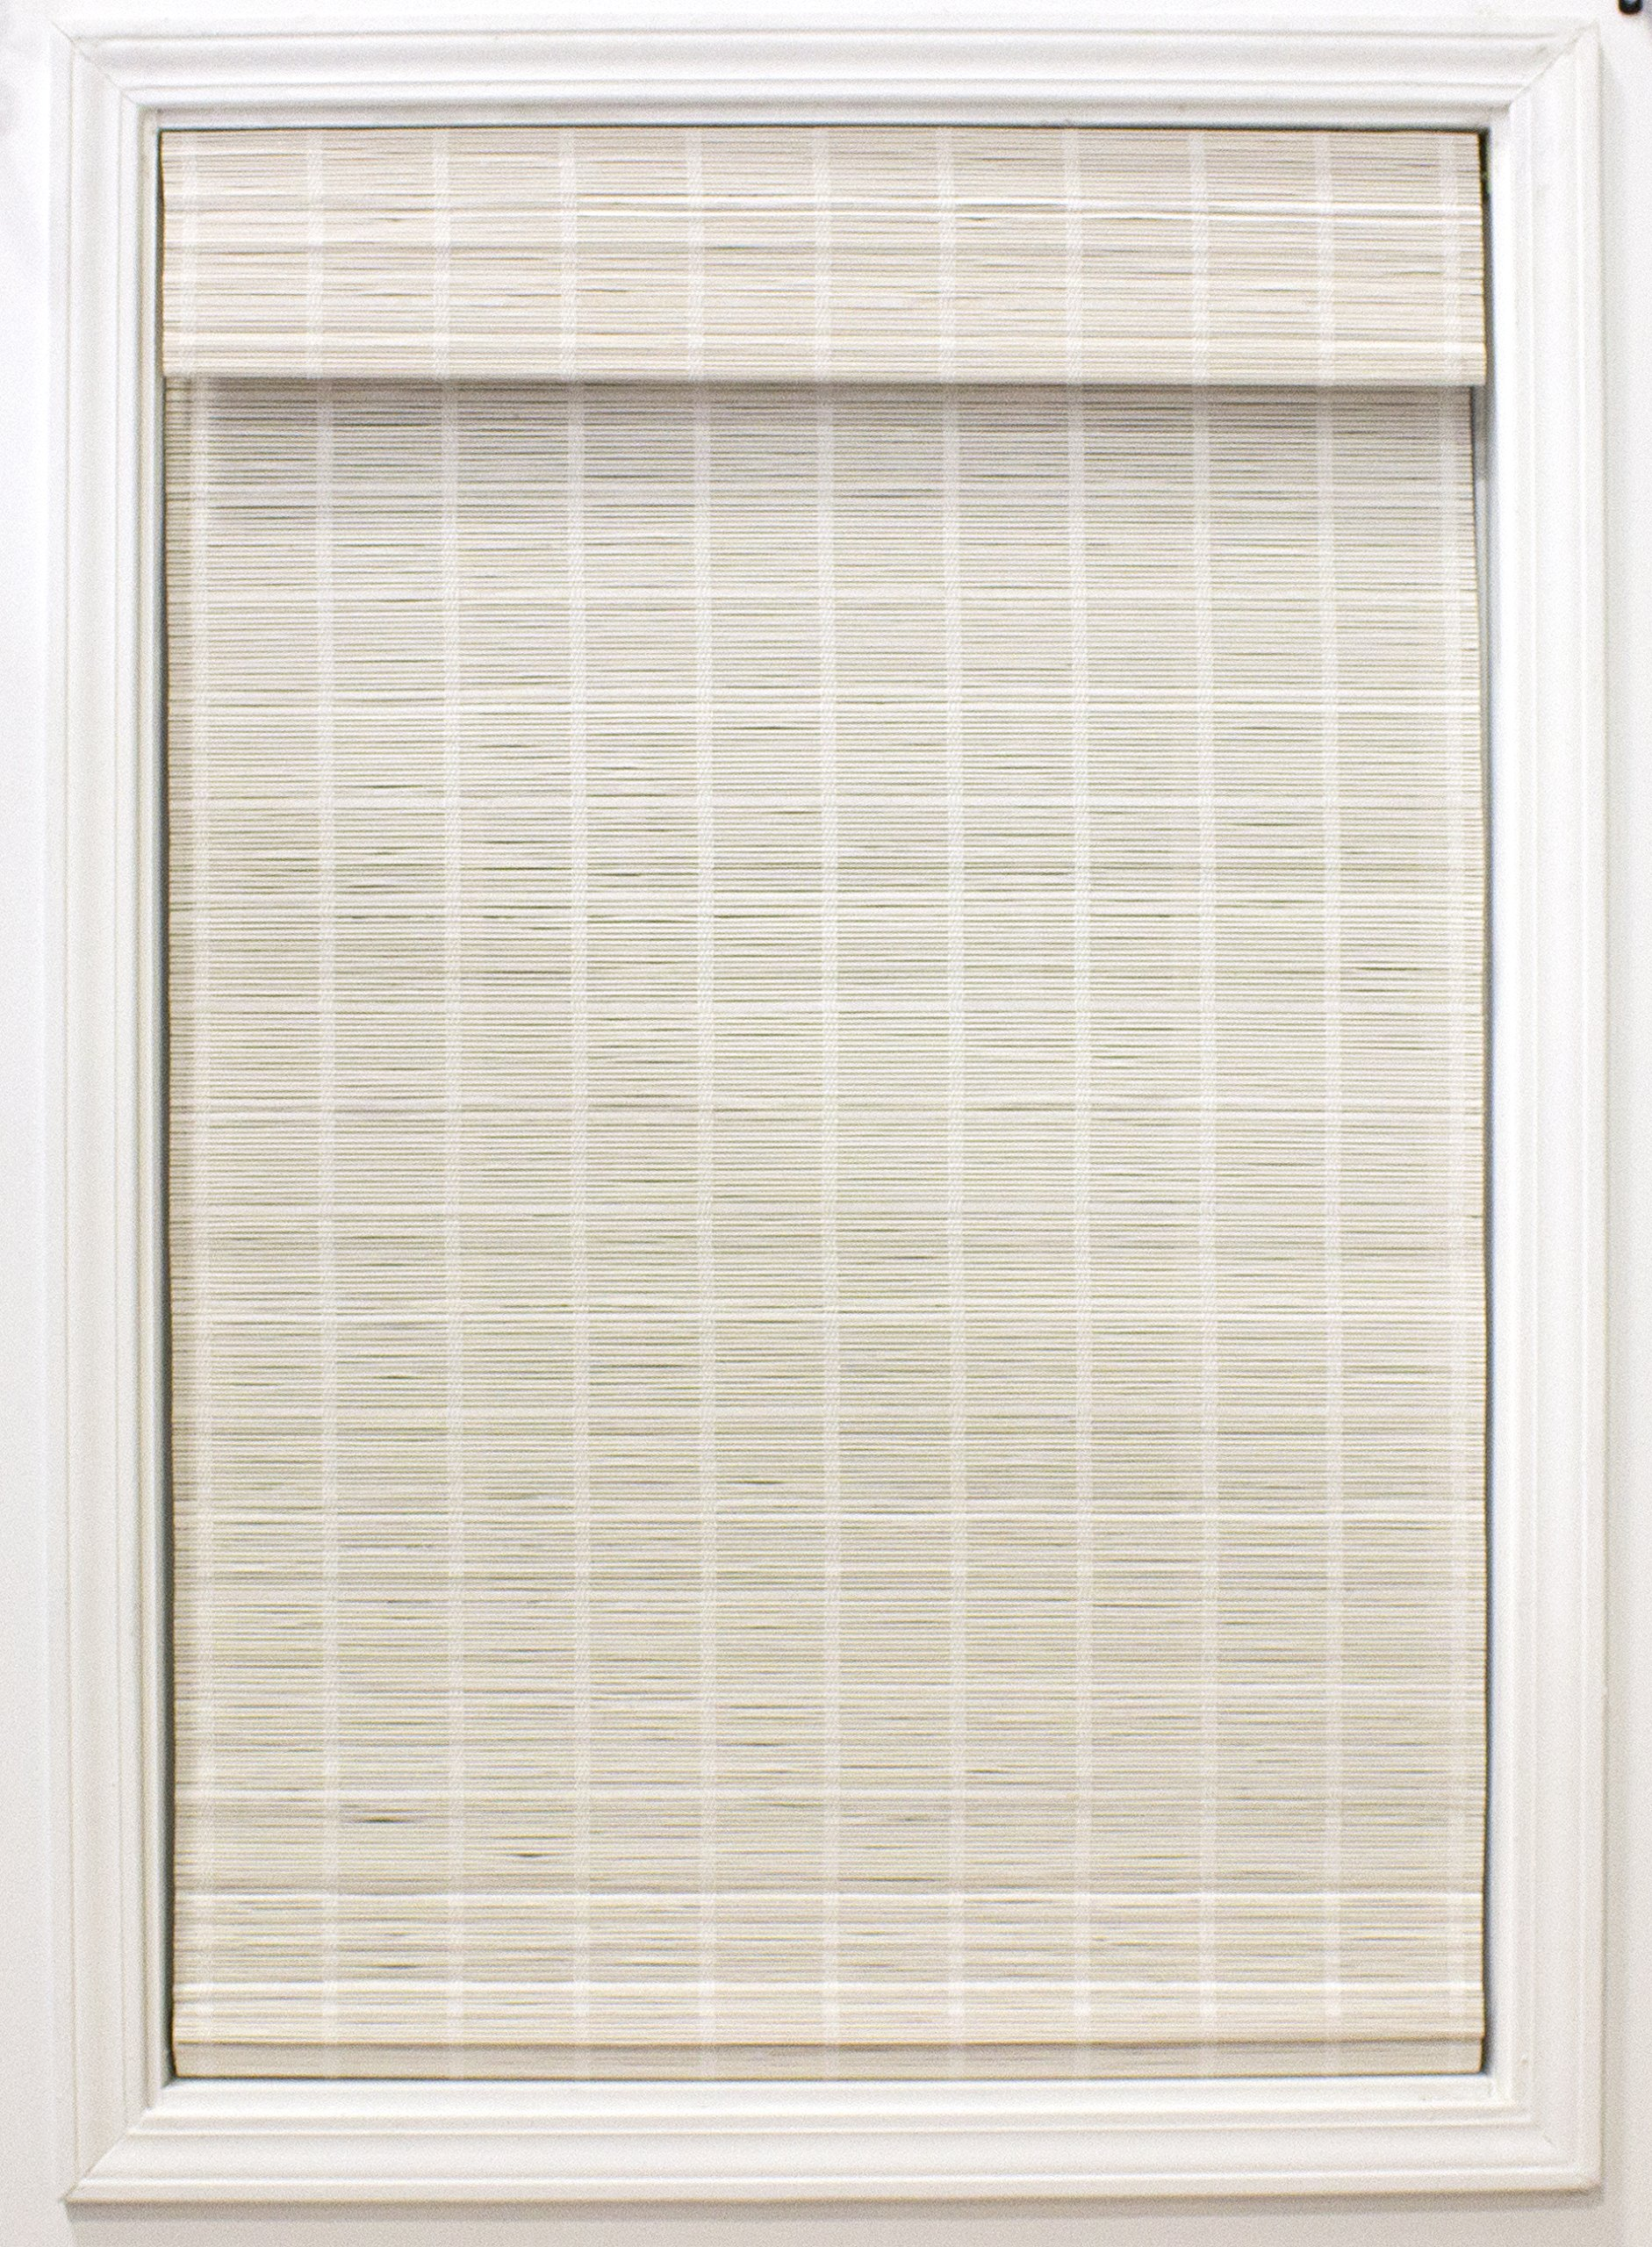 Lewis Hyman Cordless Bayshore Matchstick Bamboo Roman Shade-35 in. W x 64 in. L Bamboo Blinds, Roman, Cordless Shades, 35'' W x 64'' L, White by Lewis Hyman (Image #1)